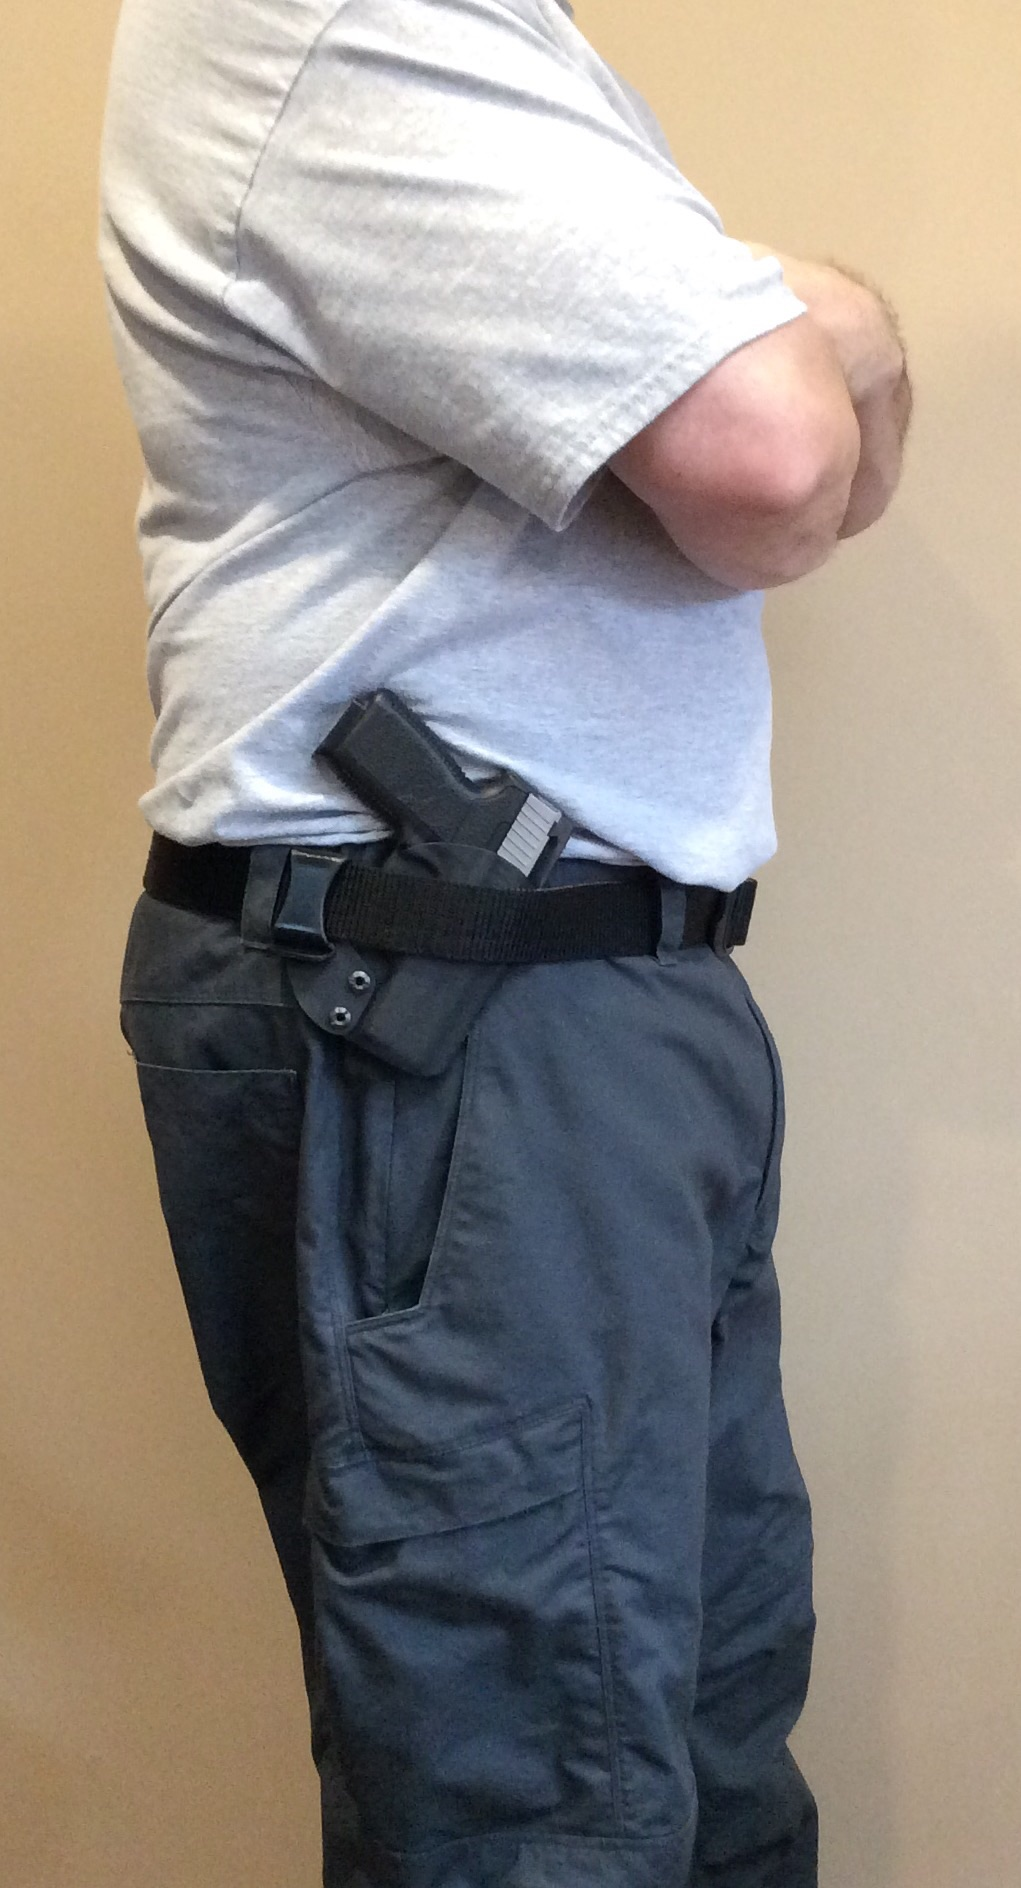 Our Holster Review Bias